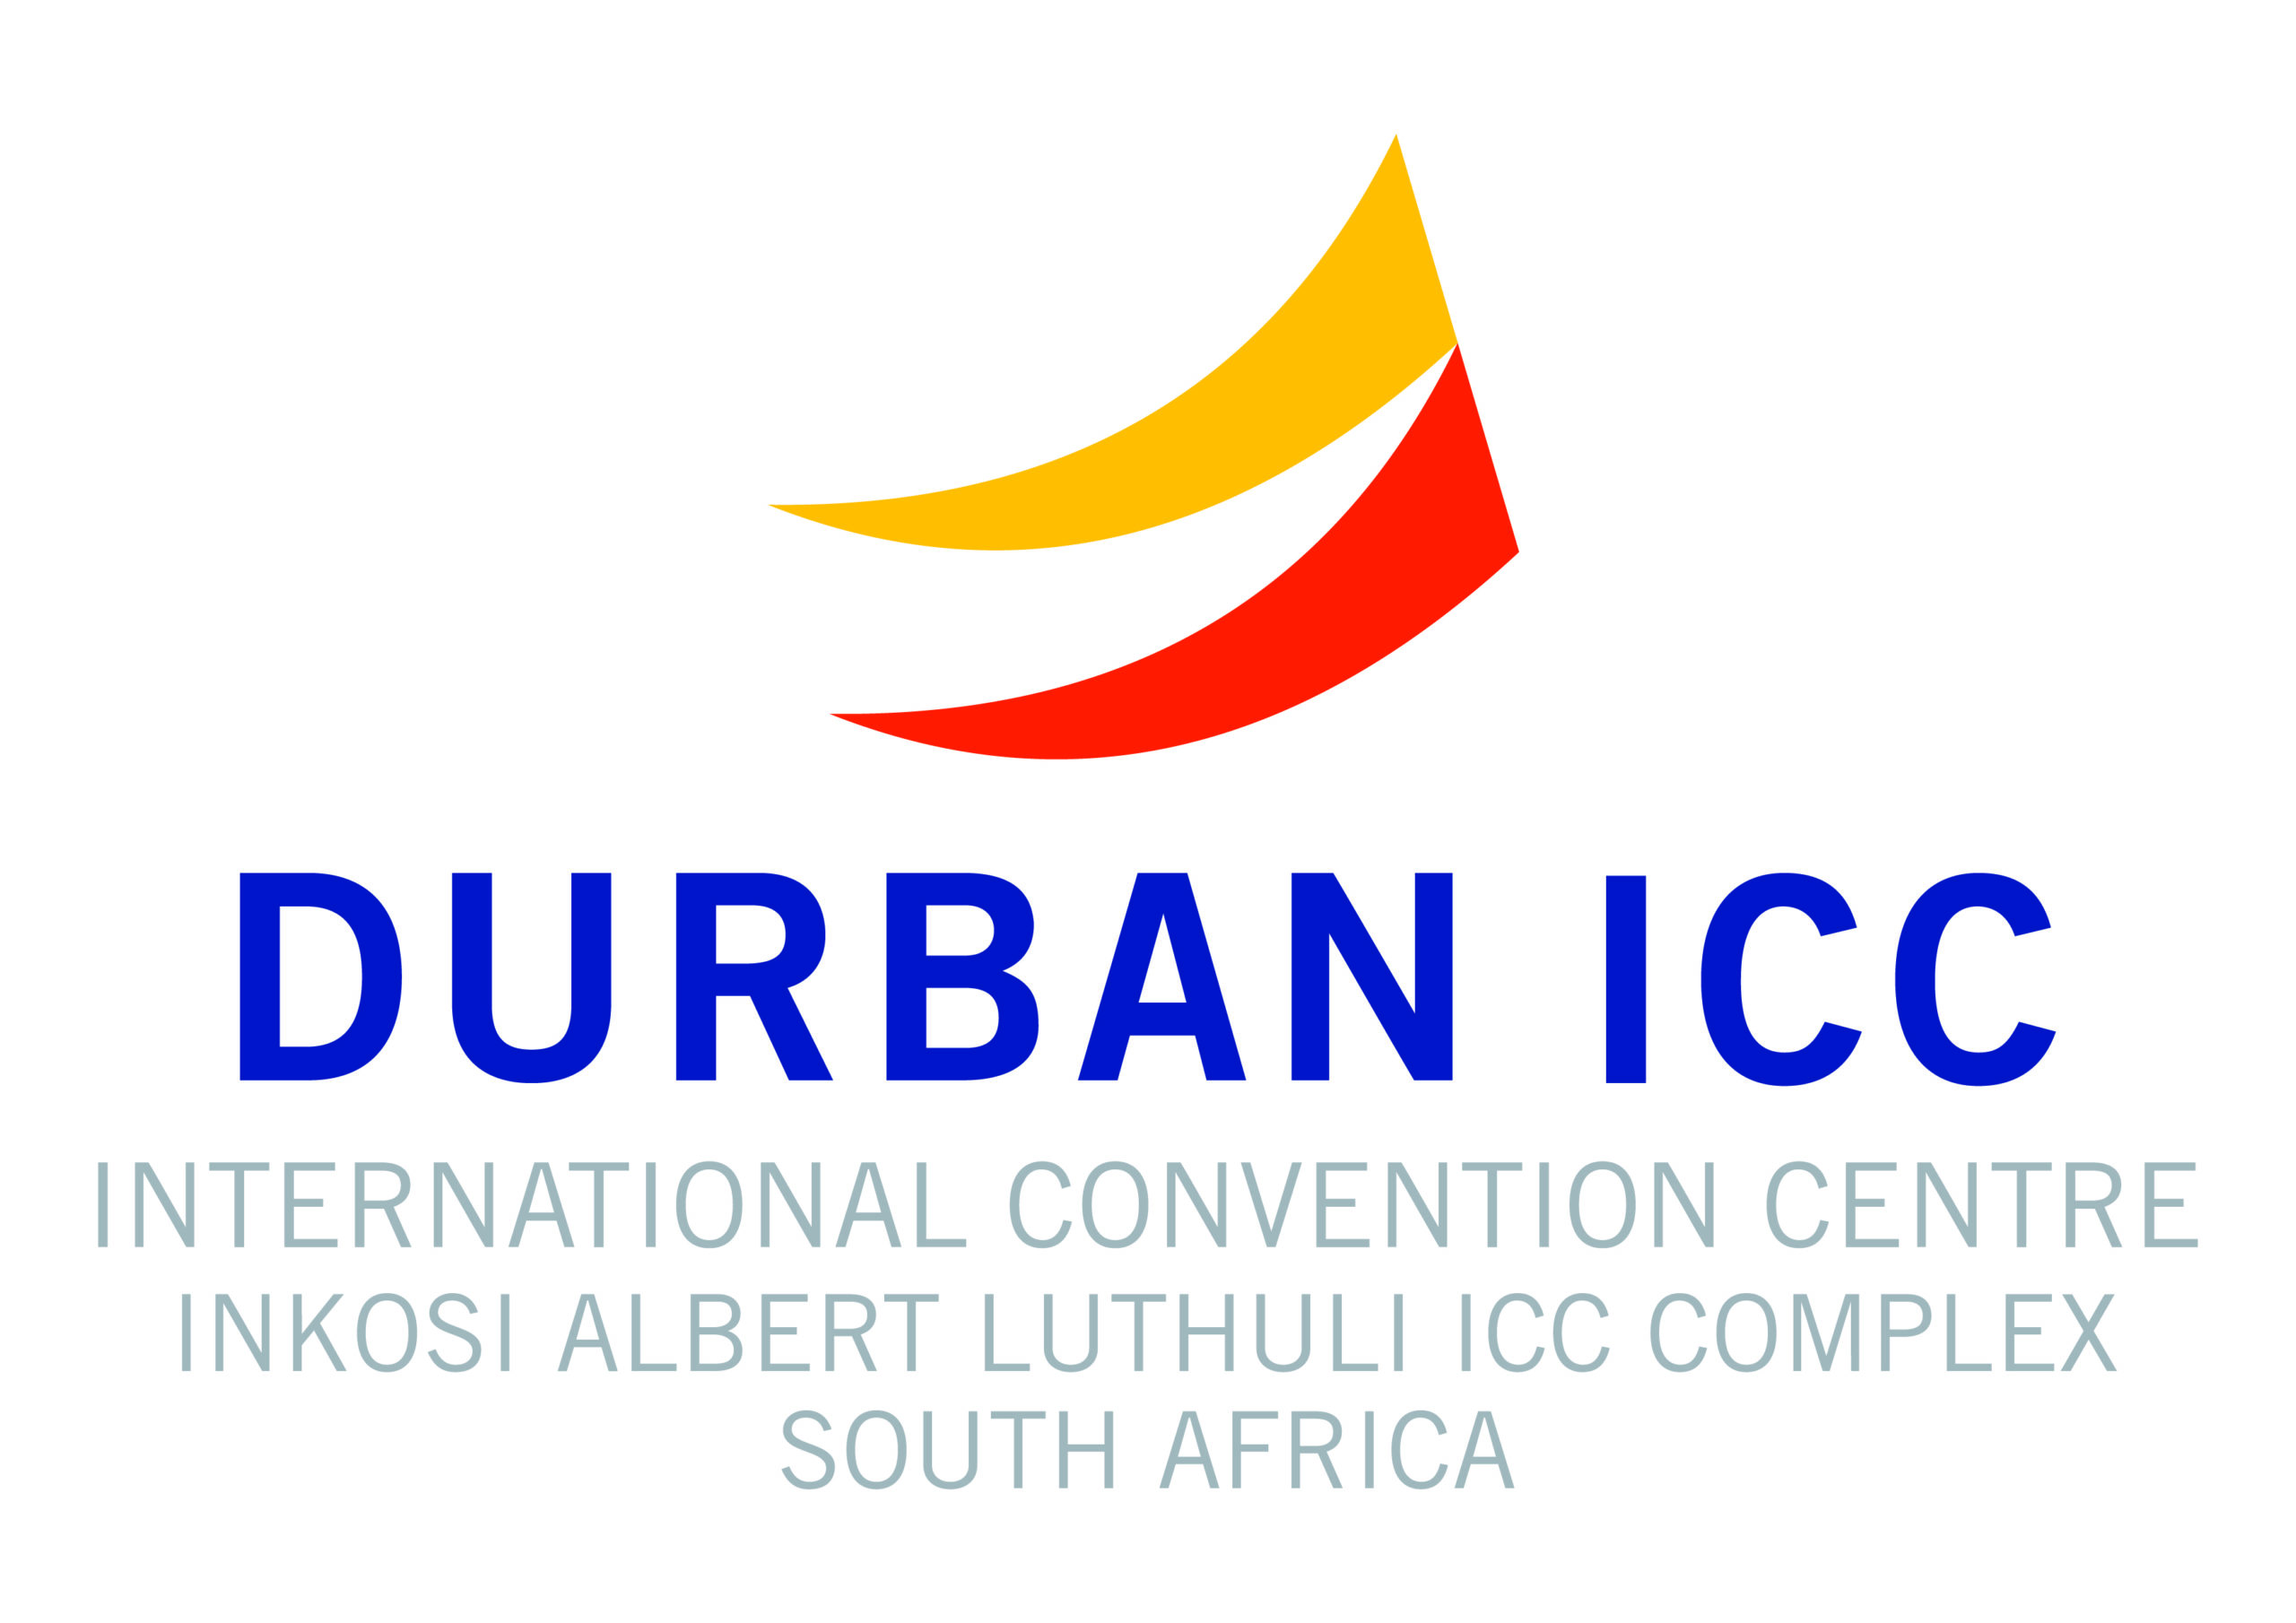 1Durban ICC Logo High Resolution